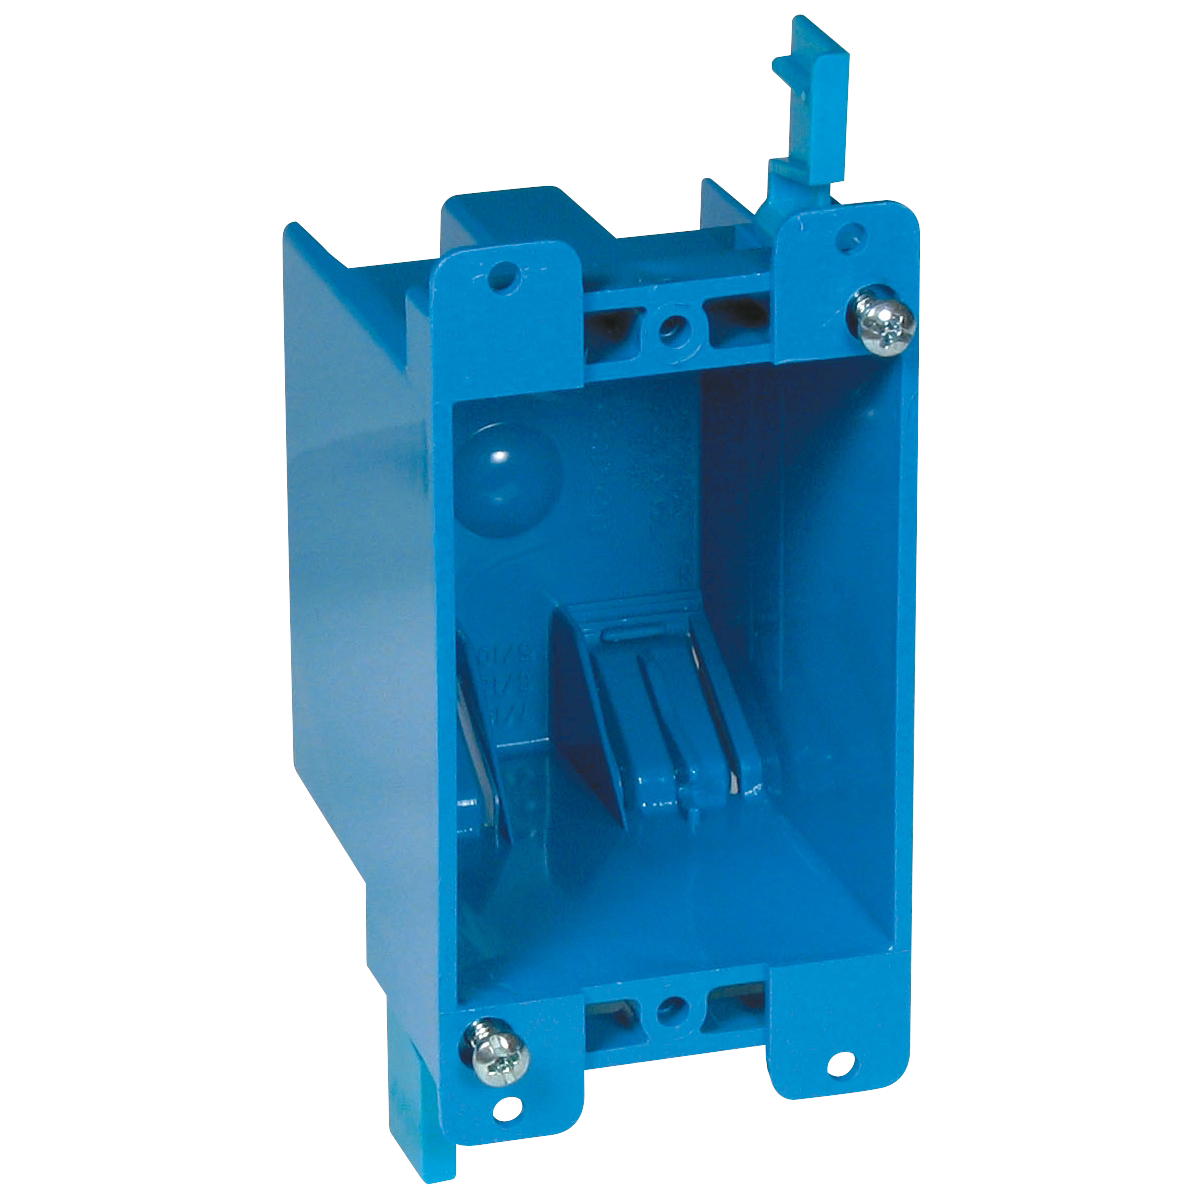 Carlon B114R-UPC 1-Gang 2 Clamp Old Work Outlet Box